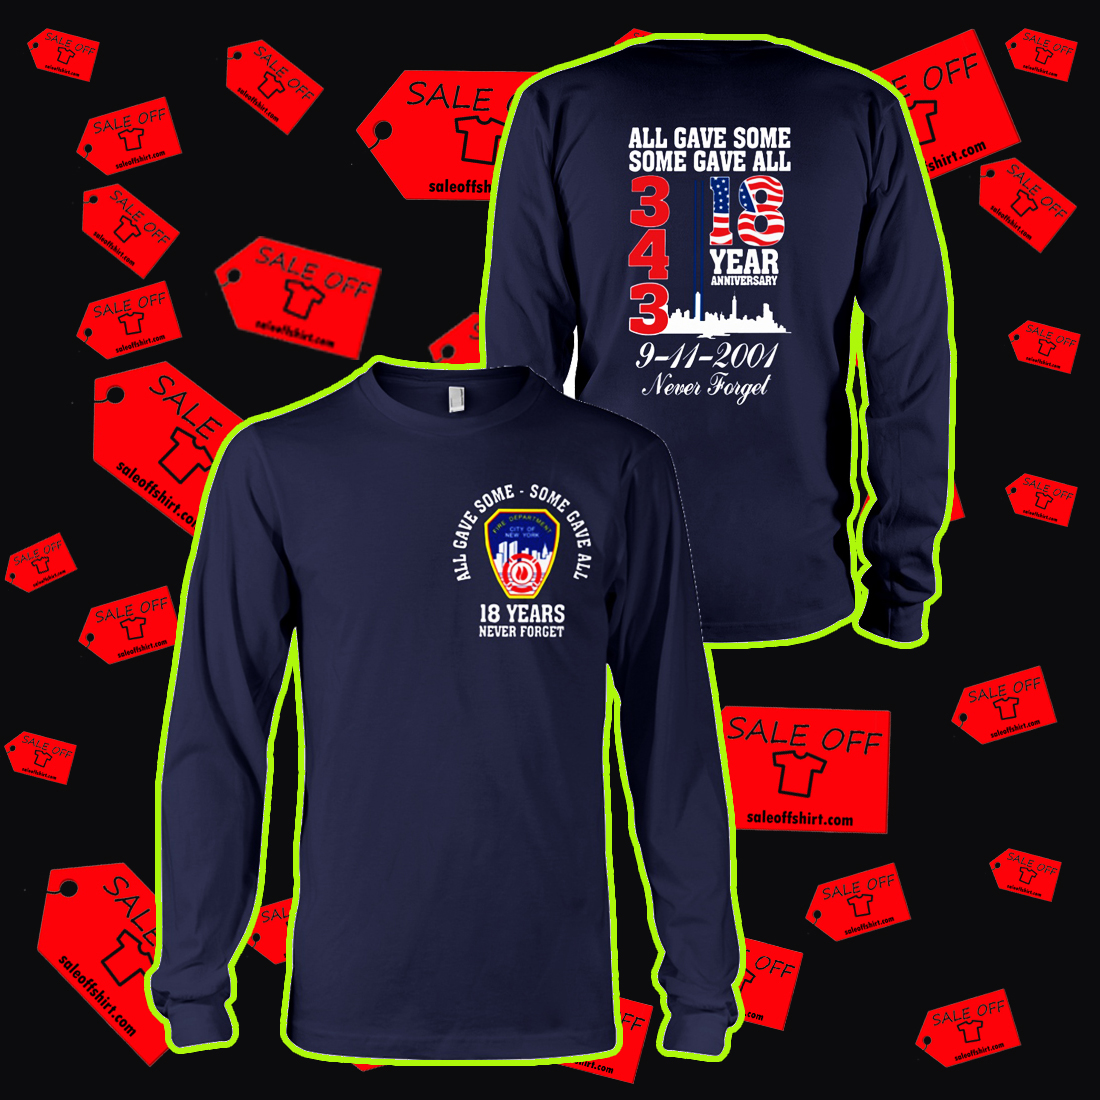 343 all gave some some gave all 18 years anniversary long sleeve tee